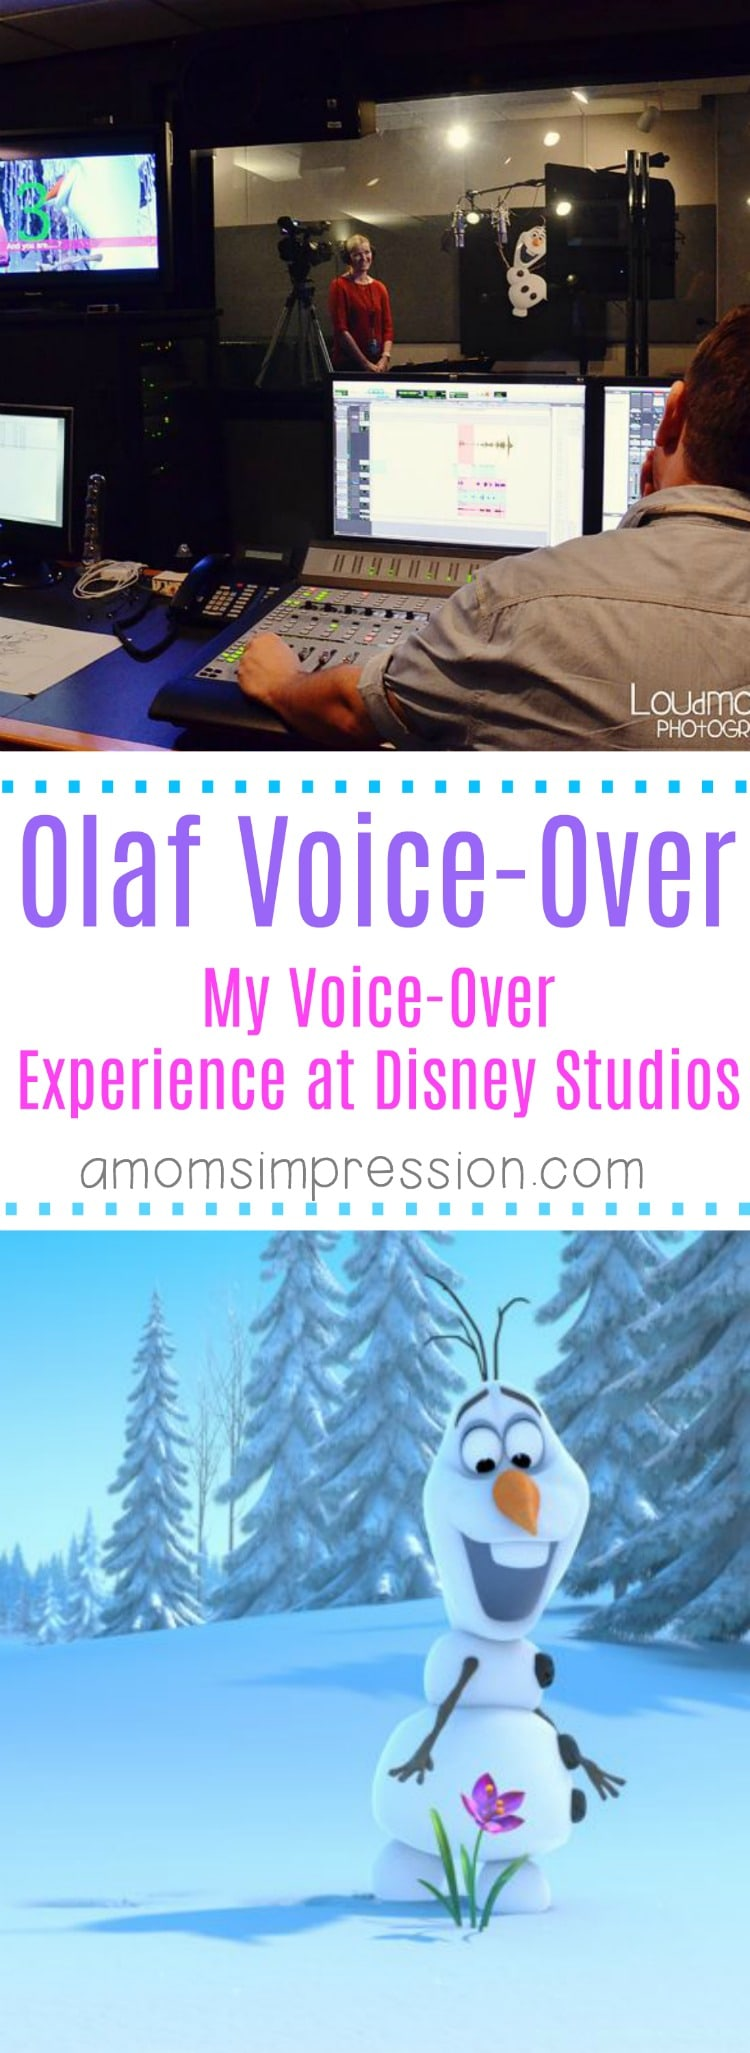 Olaf Voice-Over experience at Disney Animation Studios